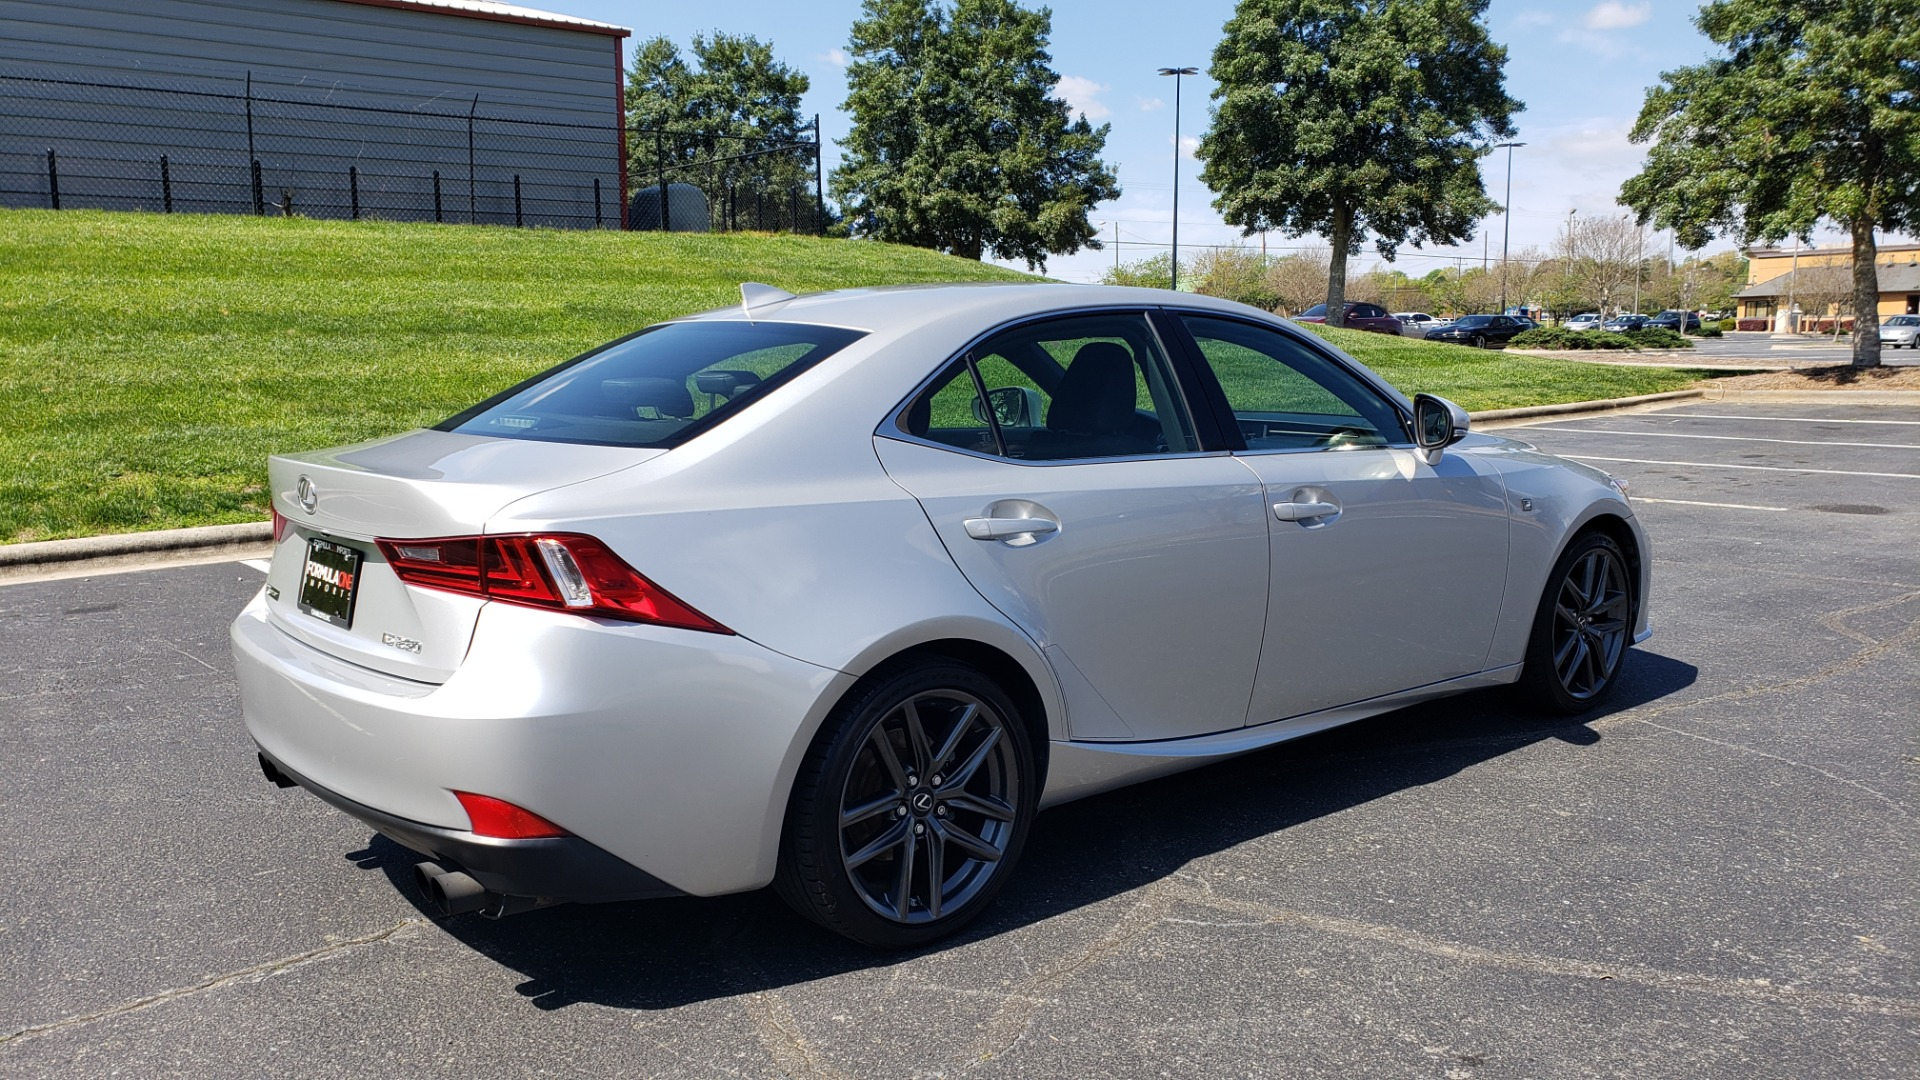 Used 2015 Lexus IS 250 F-SPORT / BSM / SUNROOF / VENT SEATS / REARVIEW for sale Sold at Formula Imports in Charlotte NC 28227 6